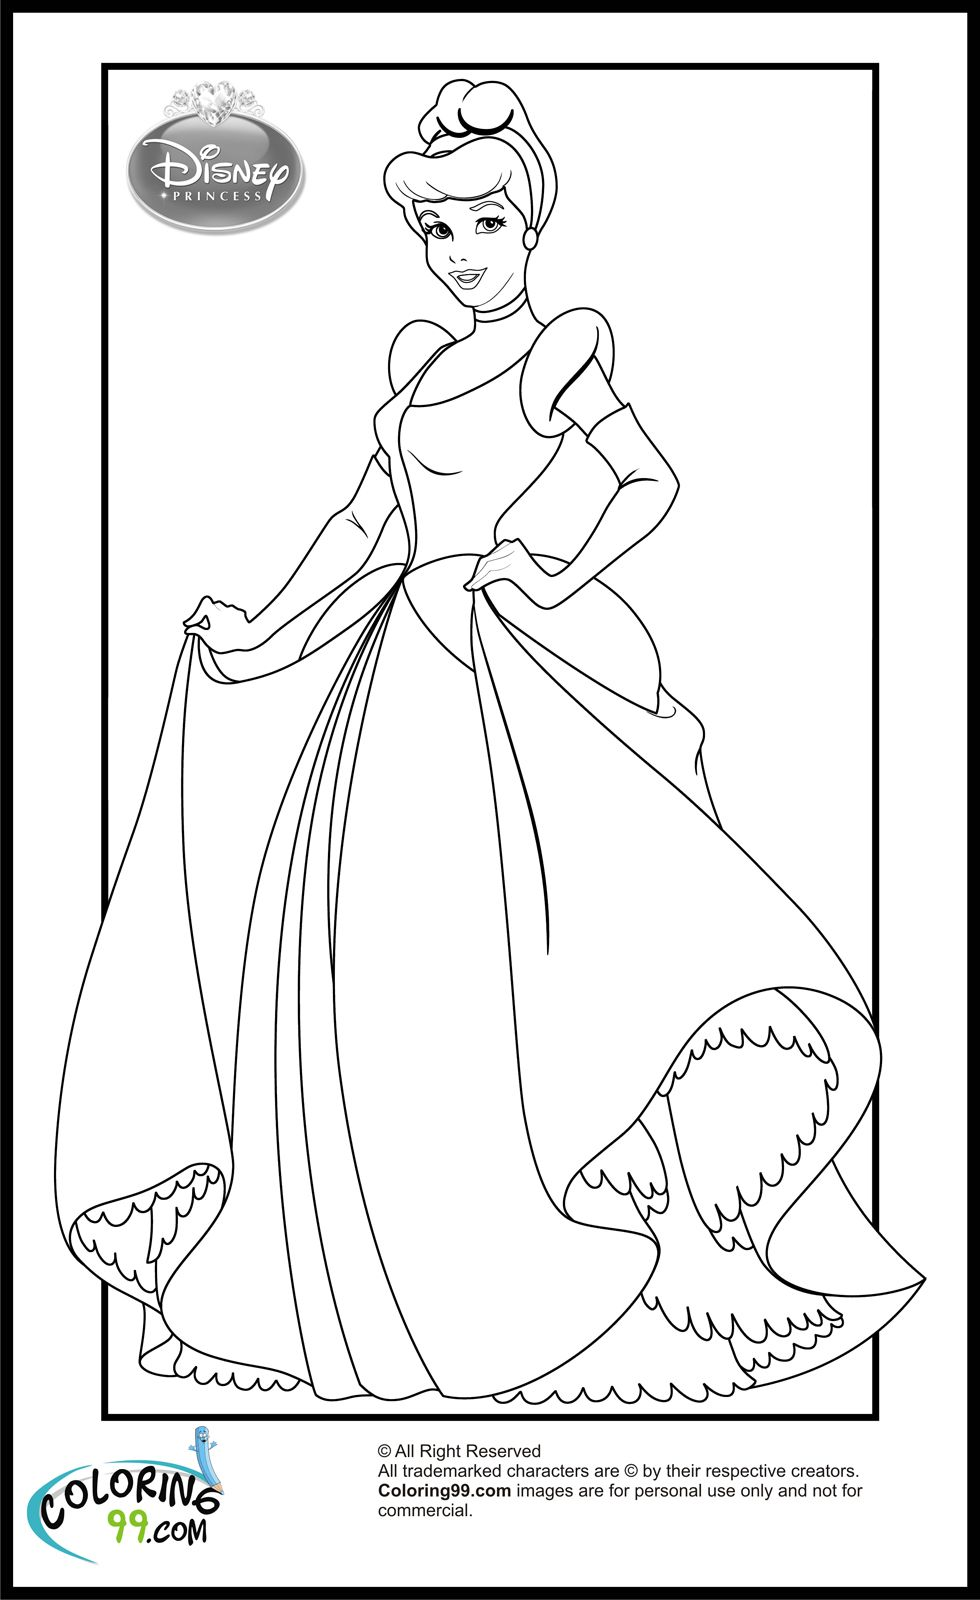 Lots of coloring categories | Cinderella coloring pages, Disney princess coloring  pages, Princess coloring pages